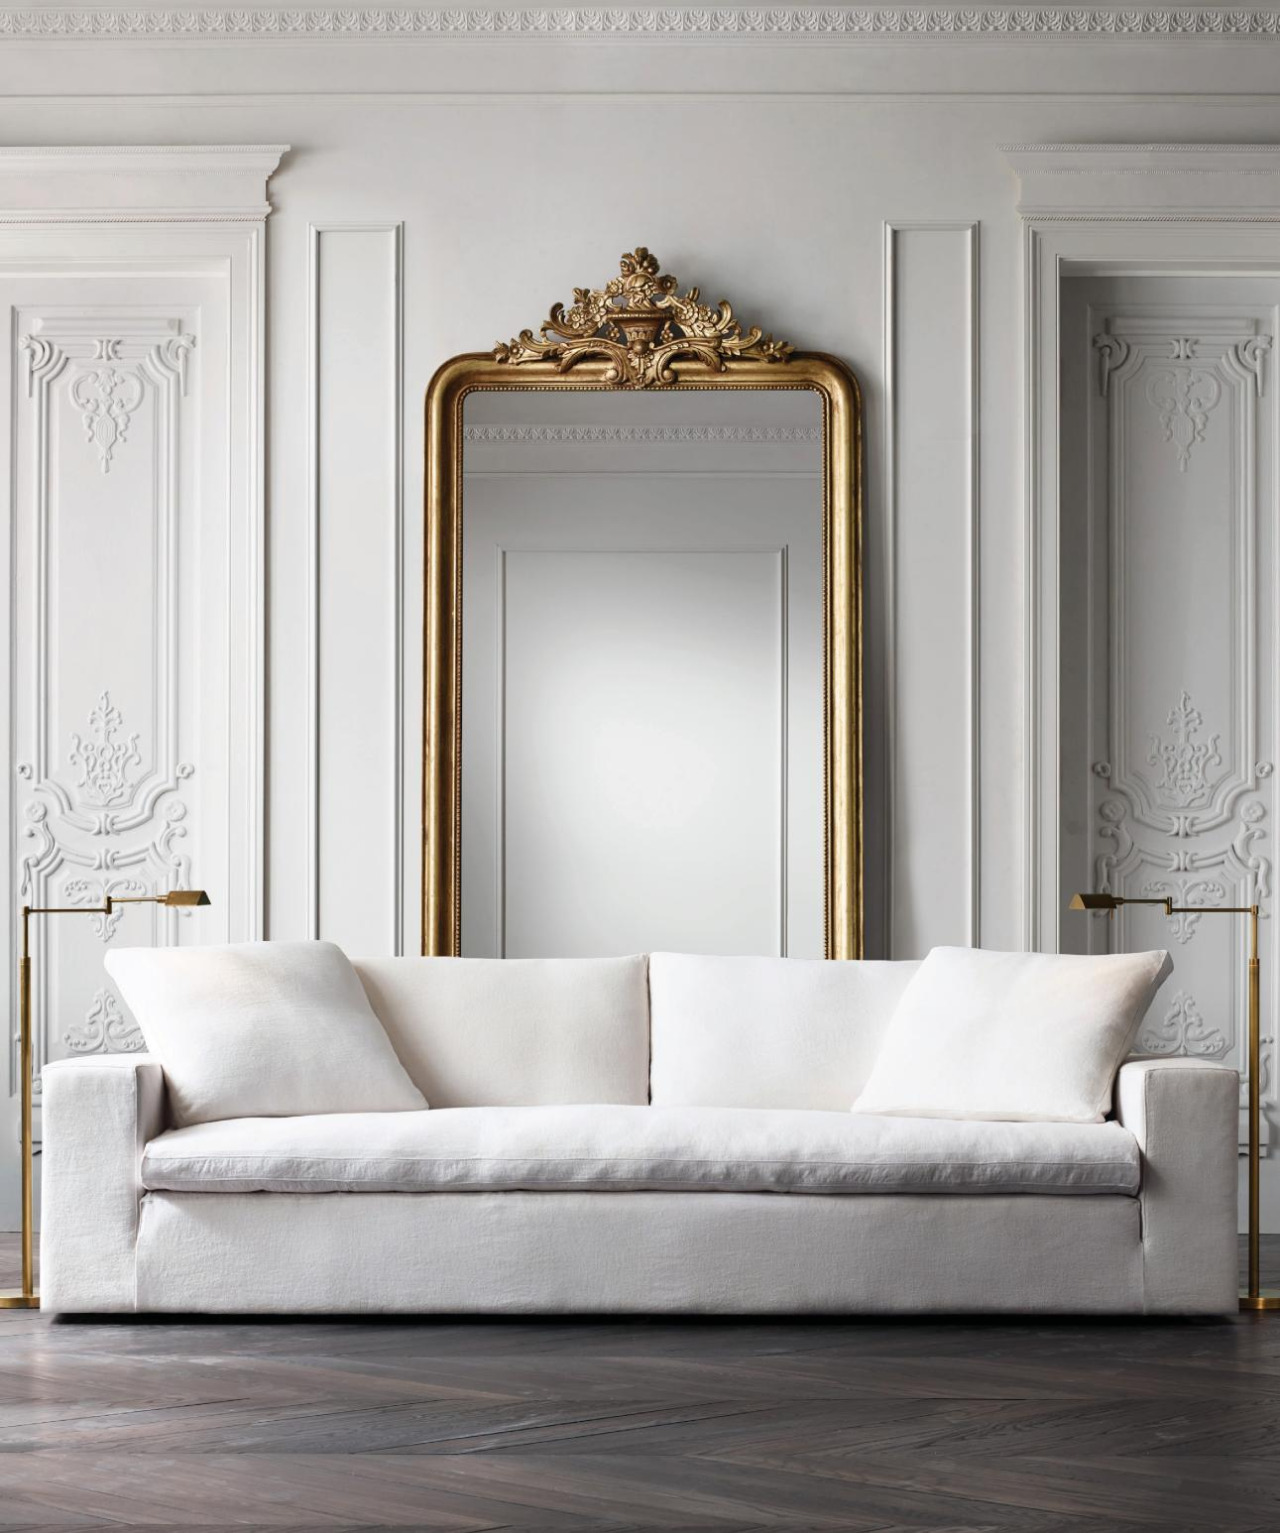 Stunning Wall Mirror Designs for your Living Room Decor Wall Mirror Designs Stunning Wall Mirror Designs for your Living Room Decor Stunning Wall Mirror Designs for your Living Room Decor